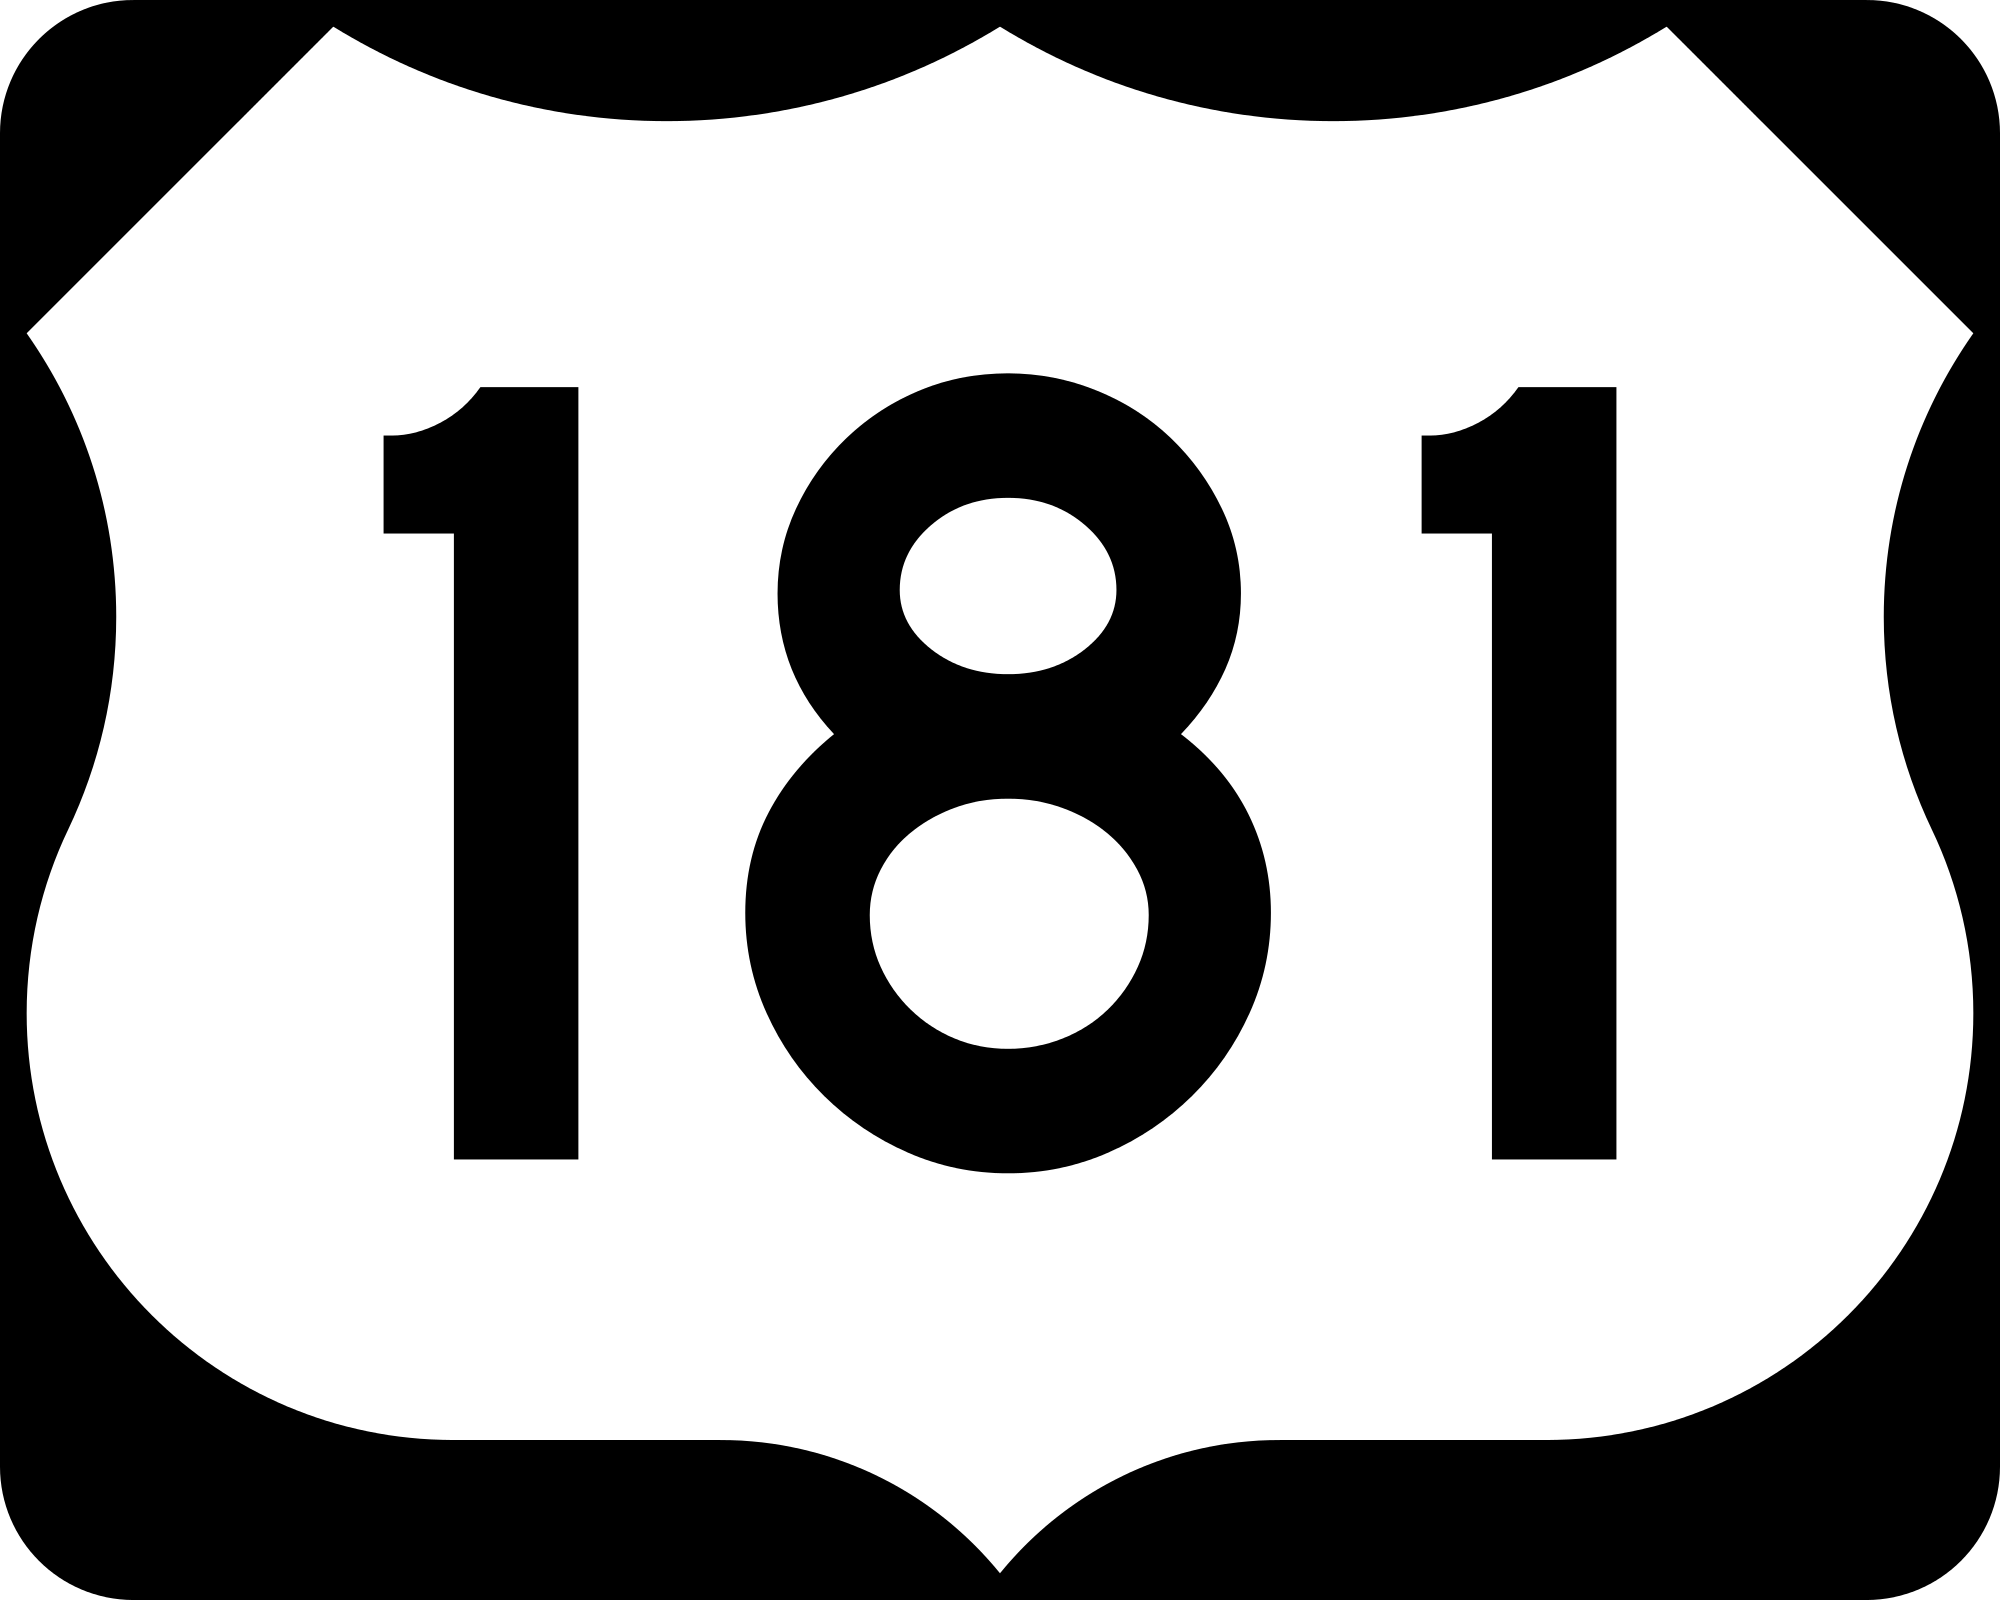 File:US 181.svg.